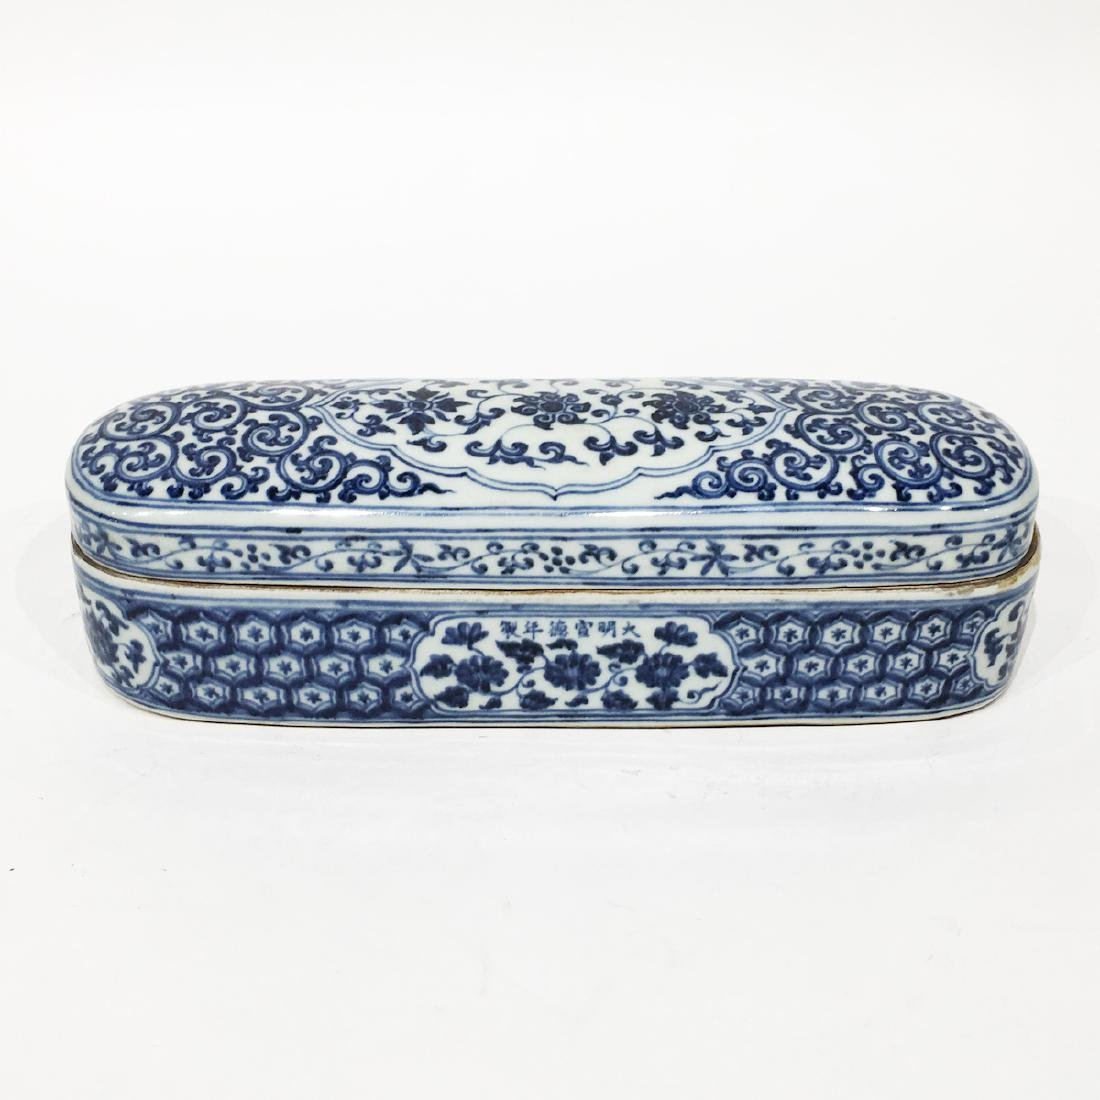 A Chinese Blue and White Porcelain Box with Cover - 2